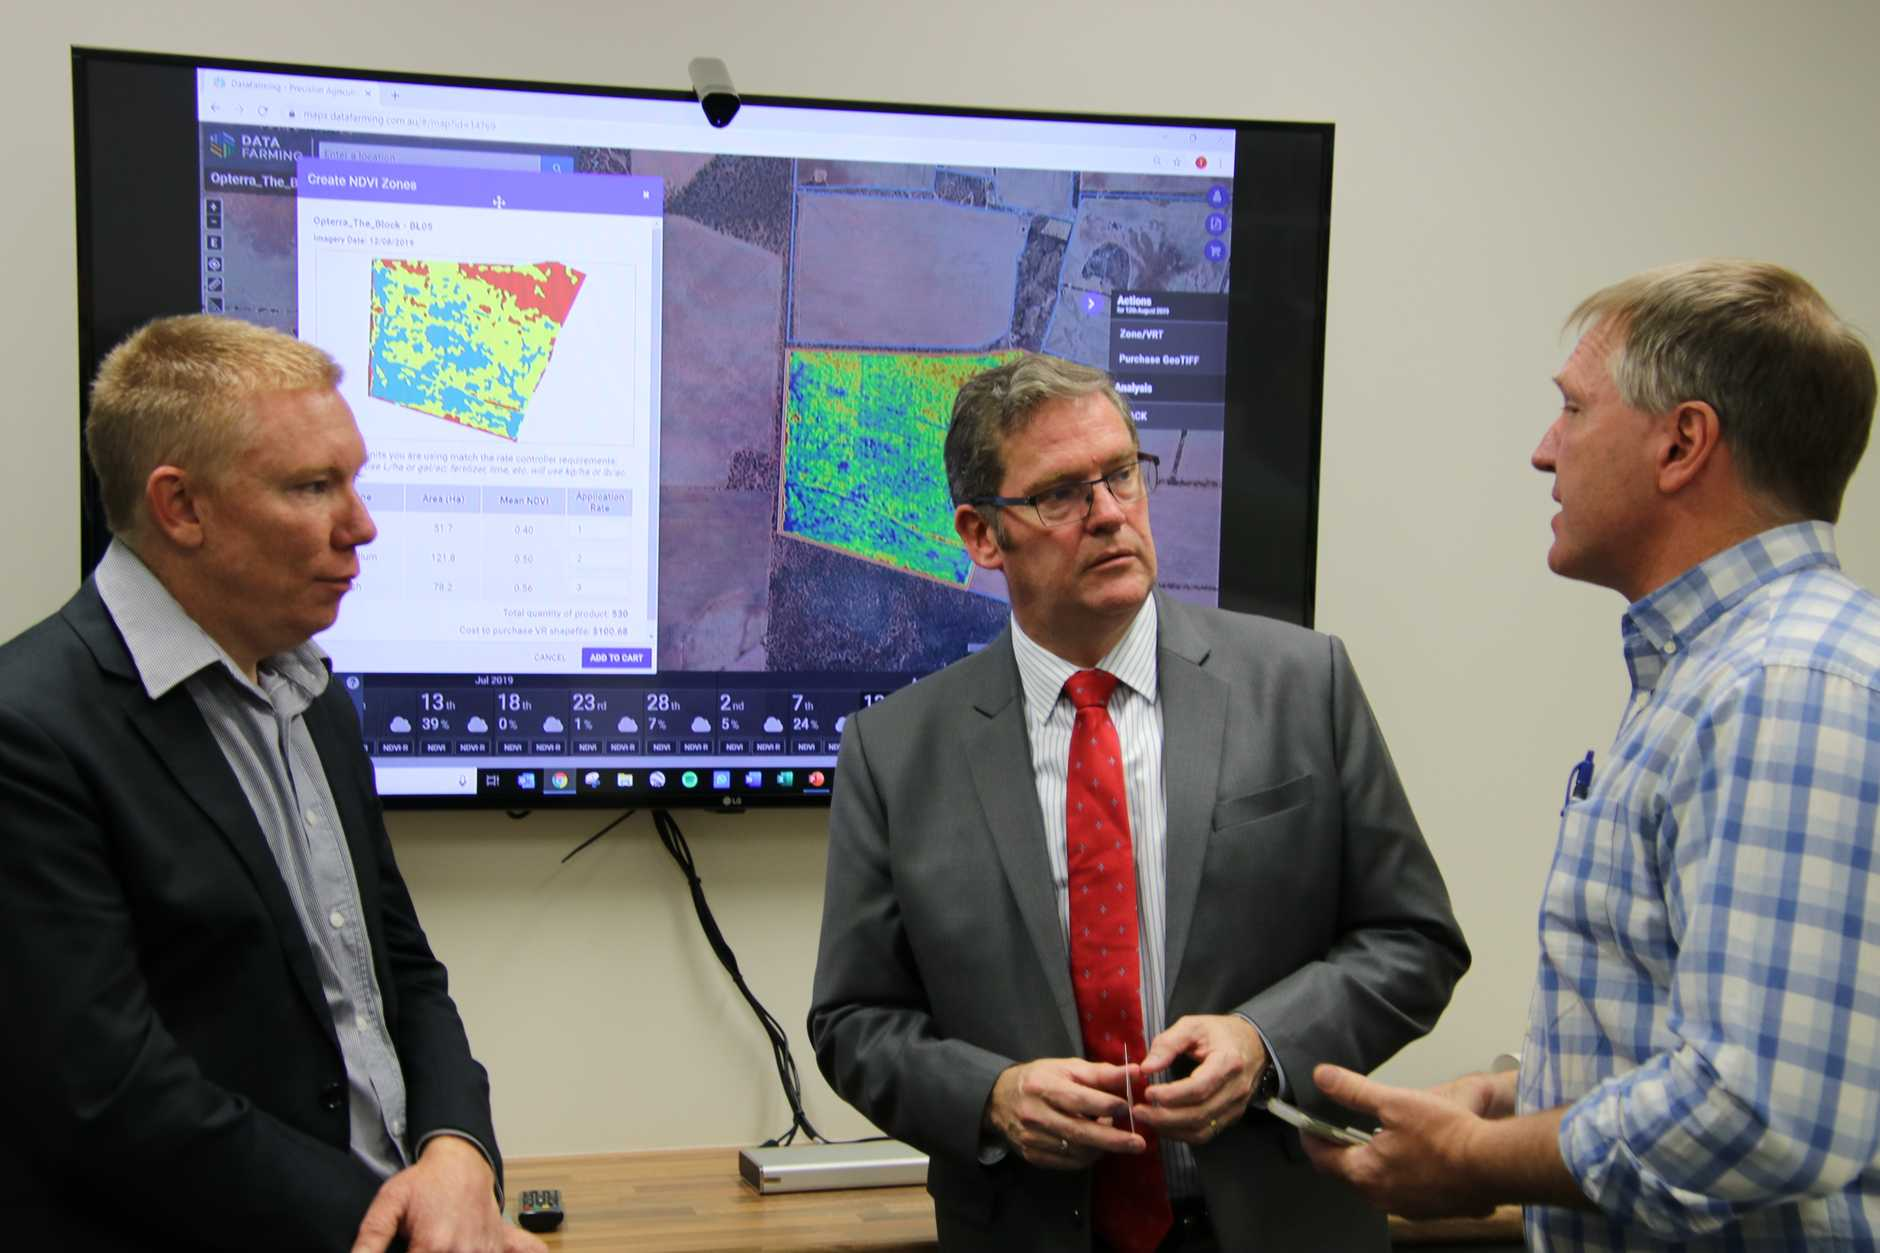 Tim Neale from DataFarming, John McVeigh and Phil Tickle from CiboLabs discussing the importance of satellite technology in supporting farming and agriculture across Australia.